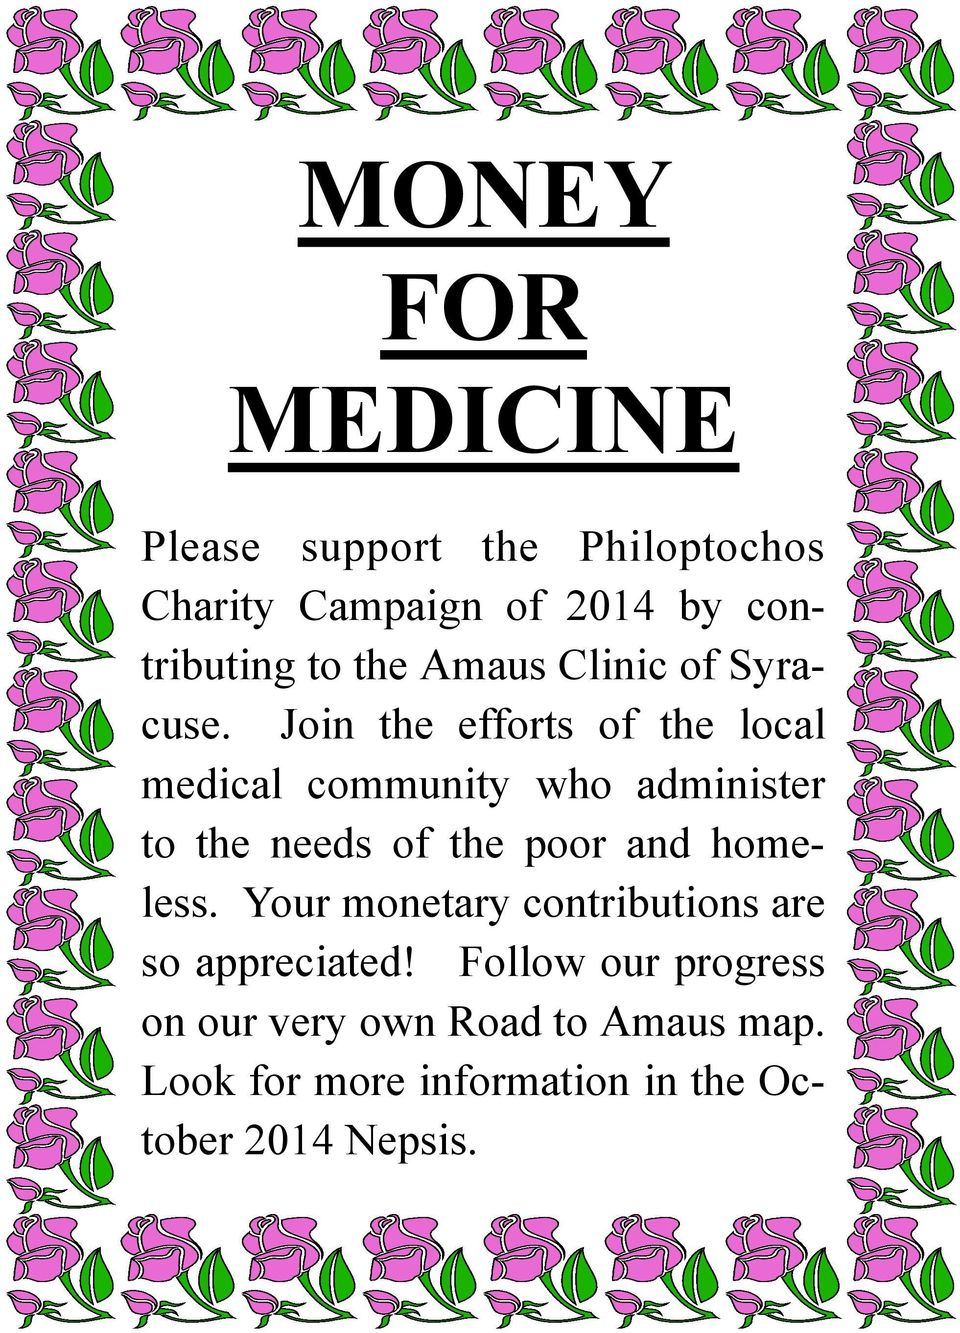 Join the efforts of the local medical community who administer to the needs of the poor and